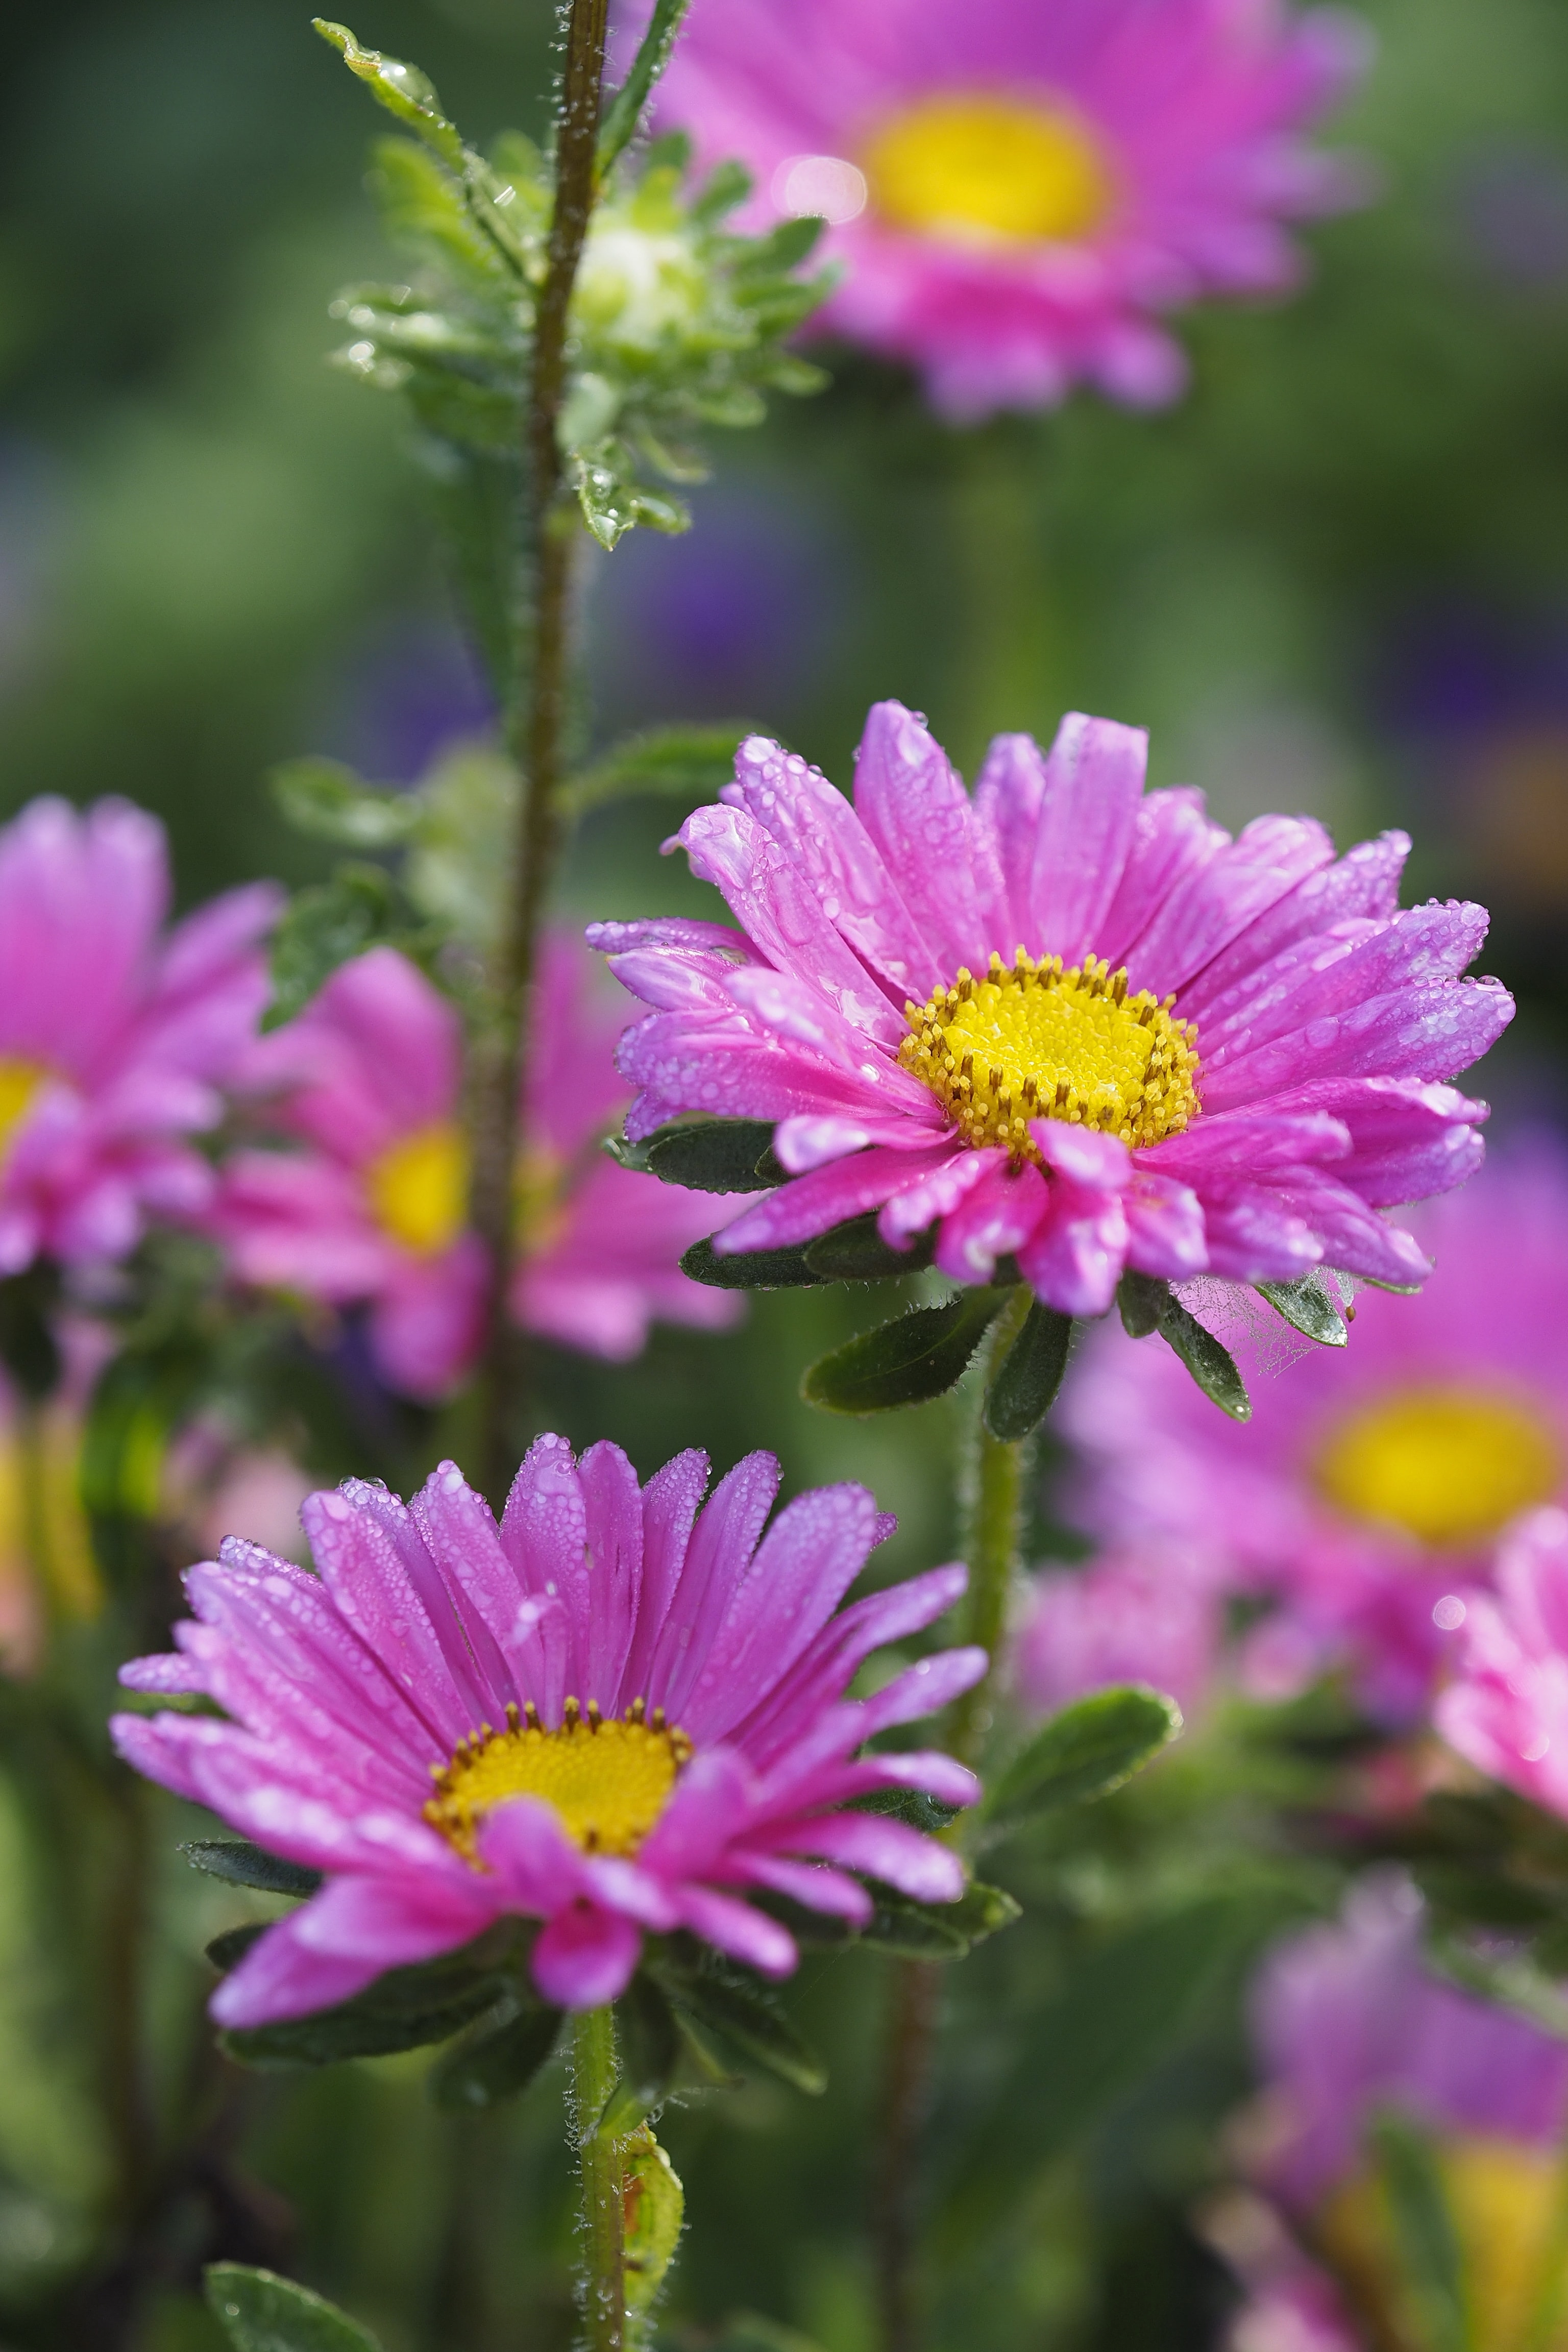 bokeh photography of two purple daisies